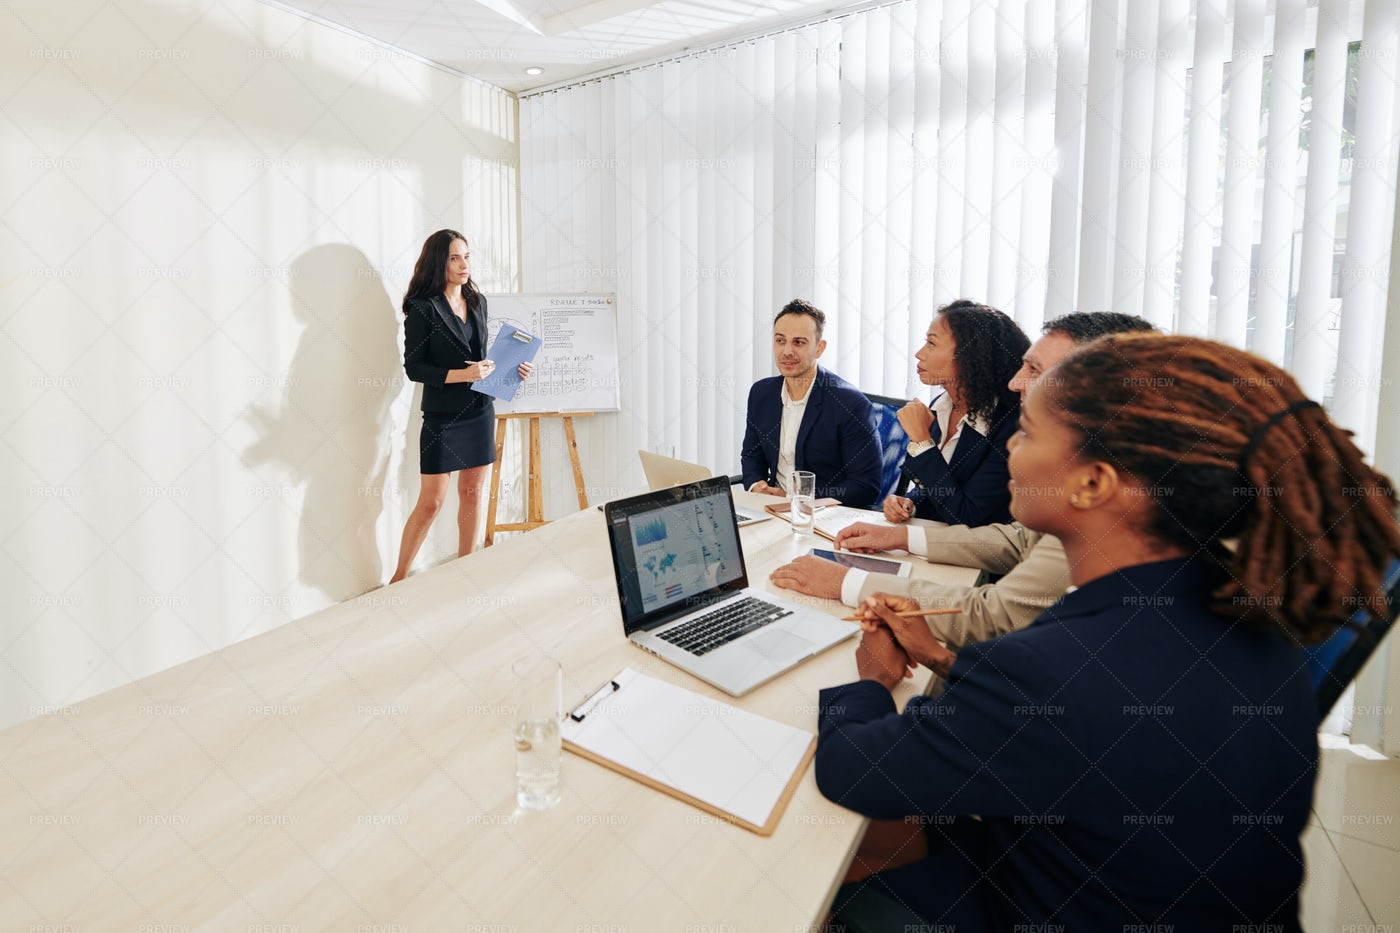 Business People Meeting In Office: Stock Photos